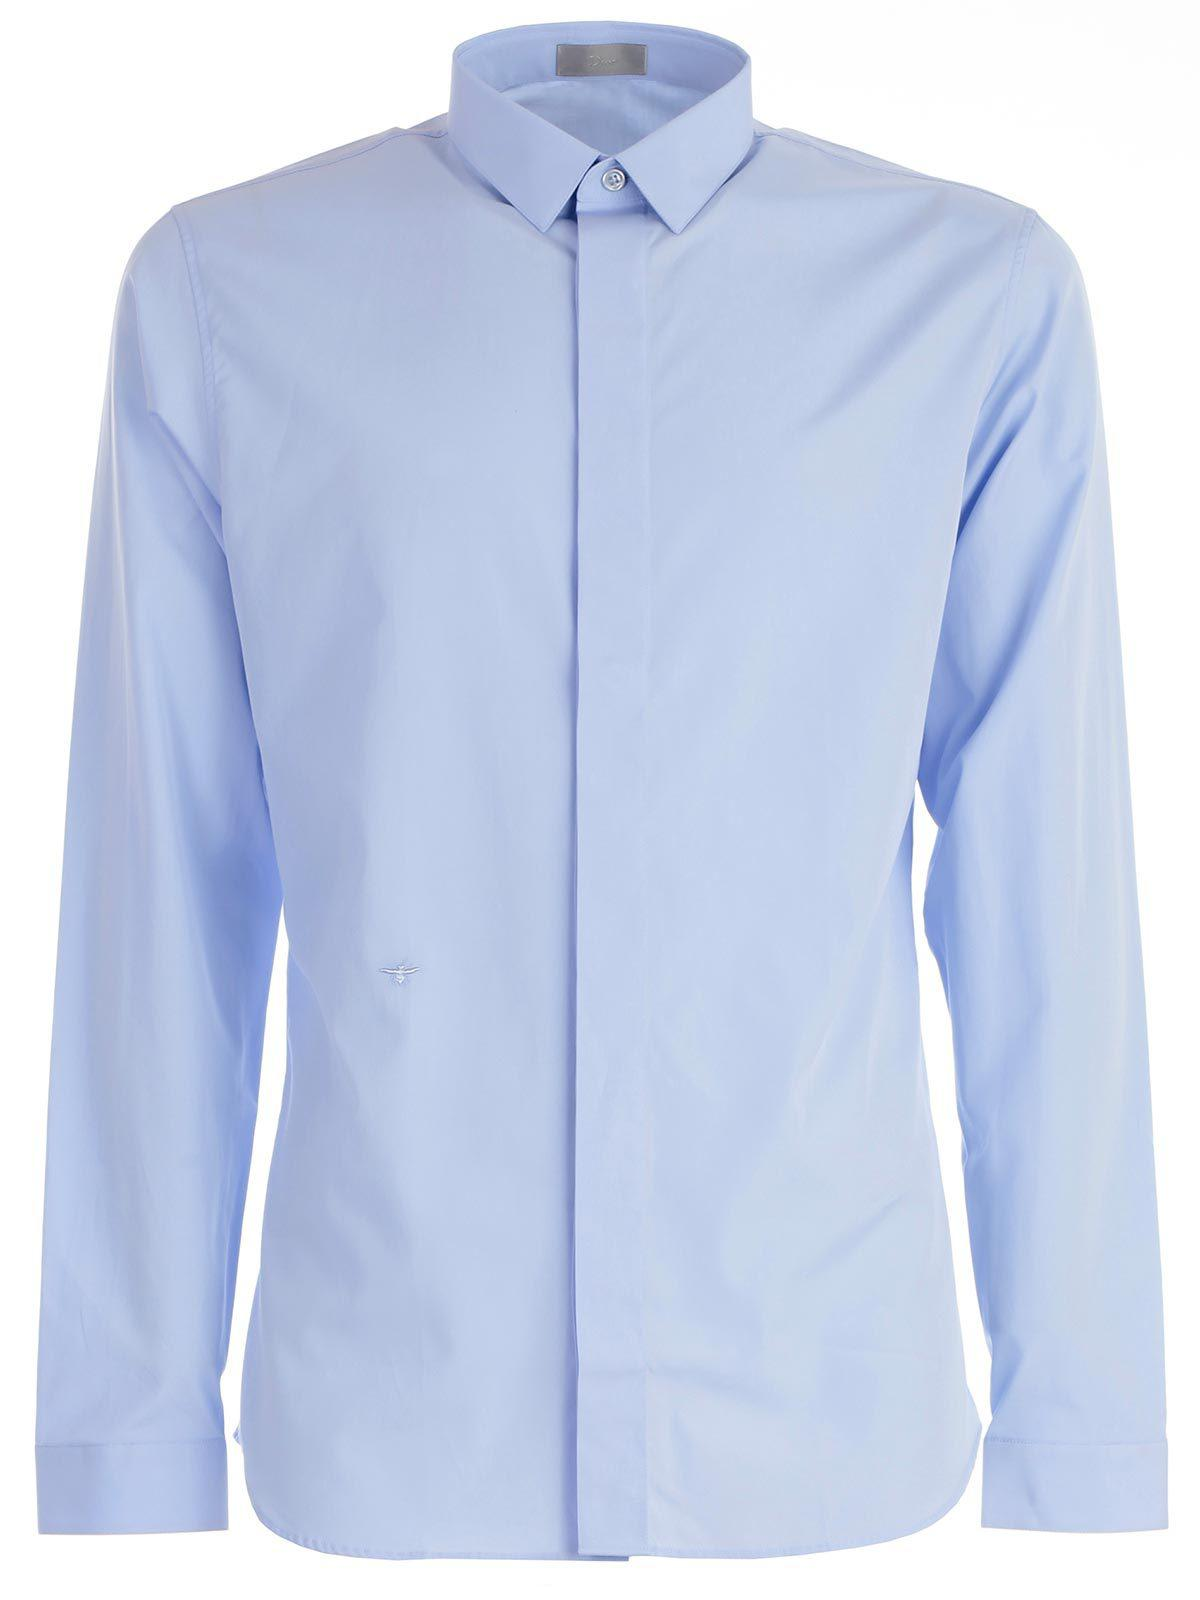 cec4142e Dior Homme Bee Embroidered Shirt in White for Men - Lyst